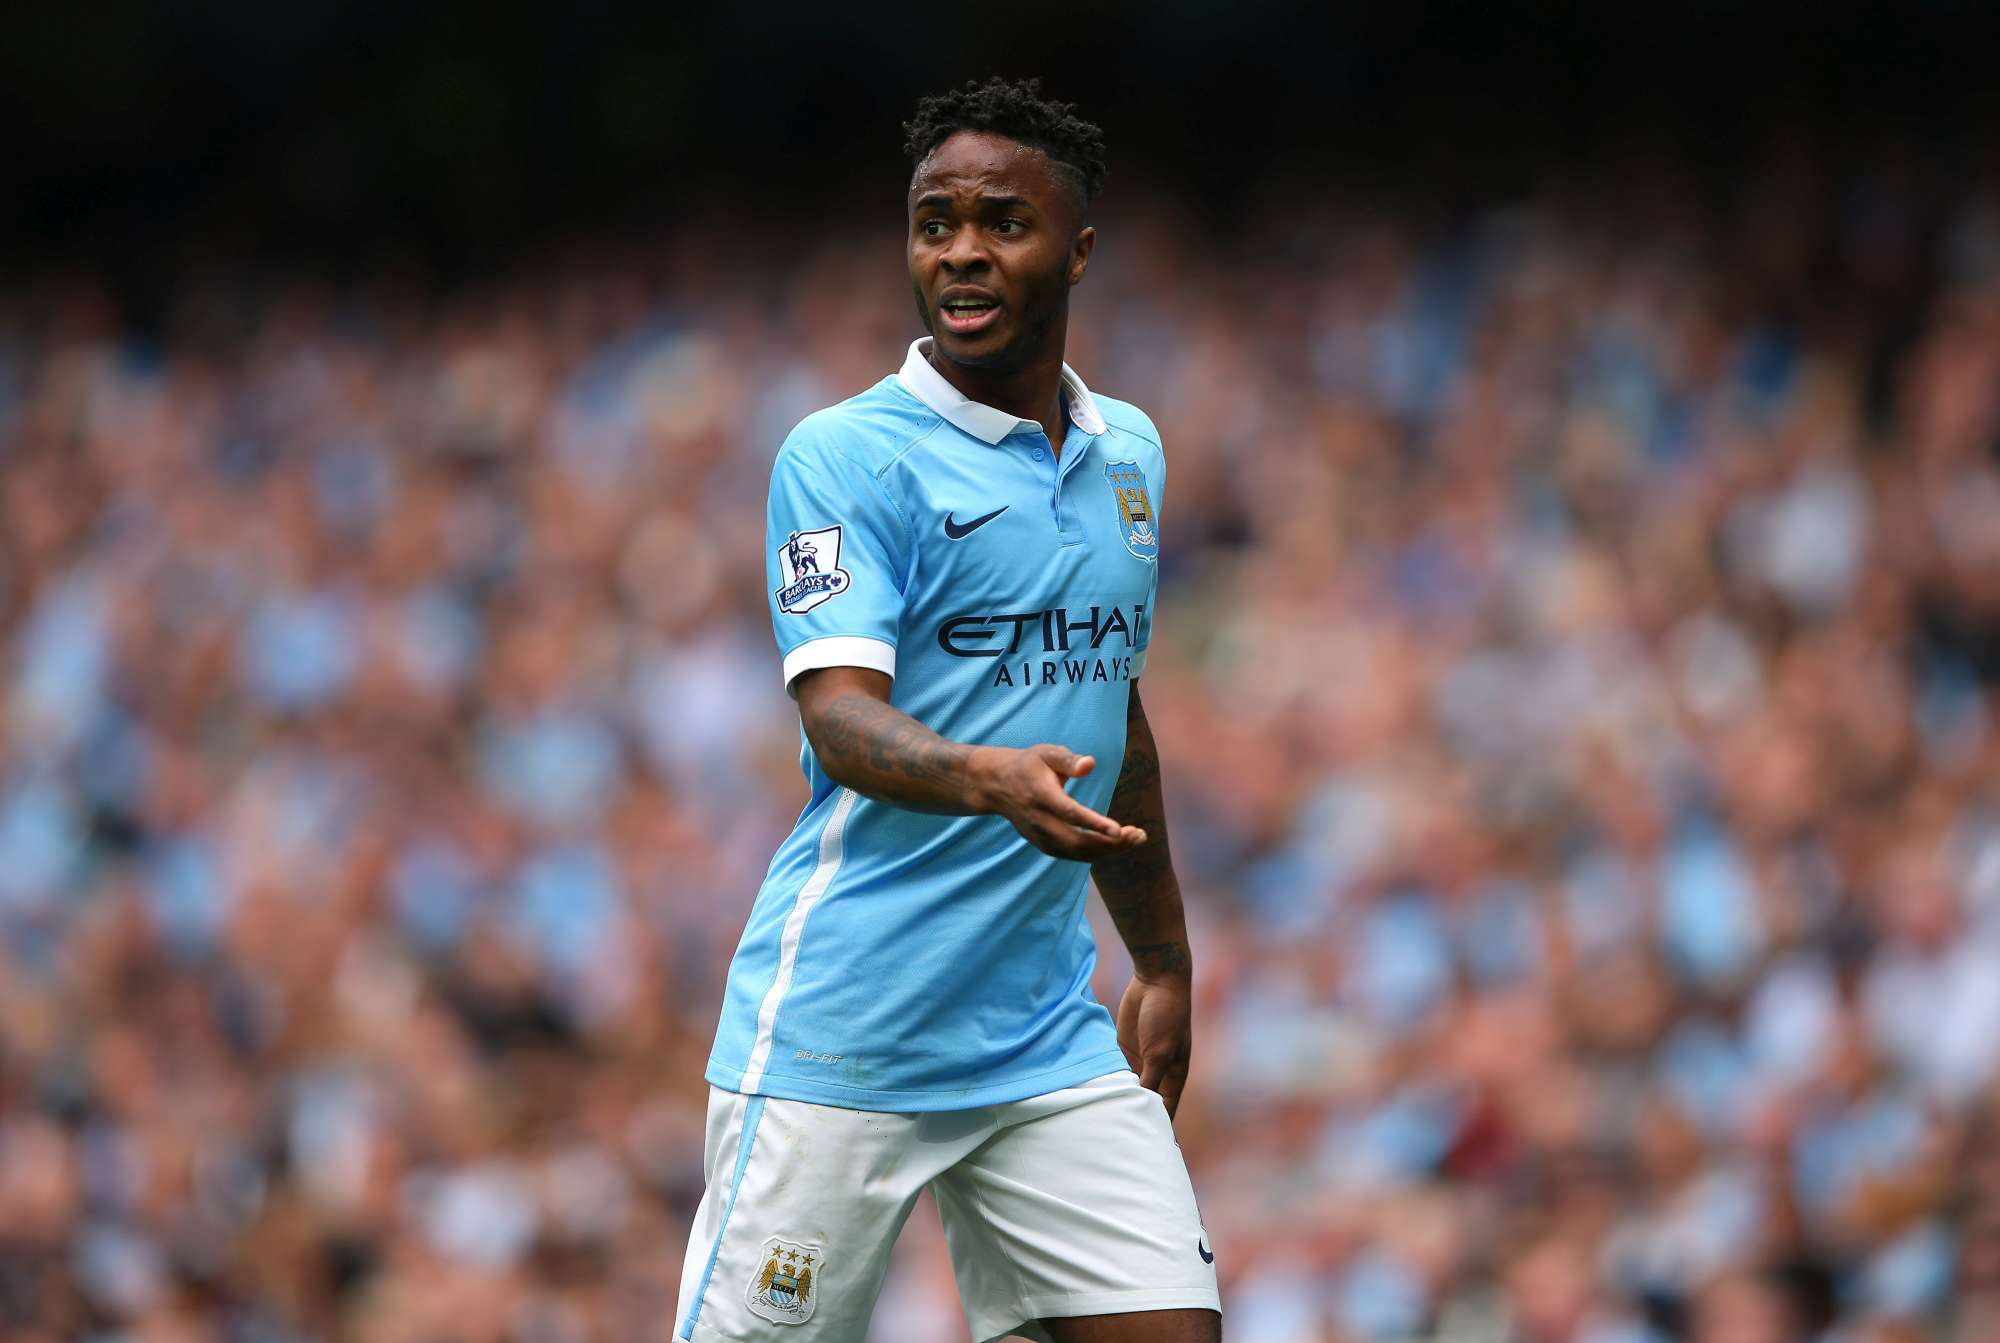 Raheem Sterling, pagato 63 milioni dal Man City